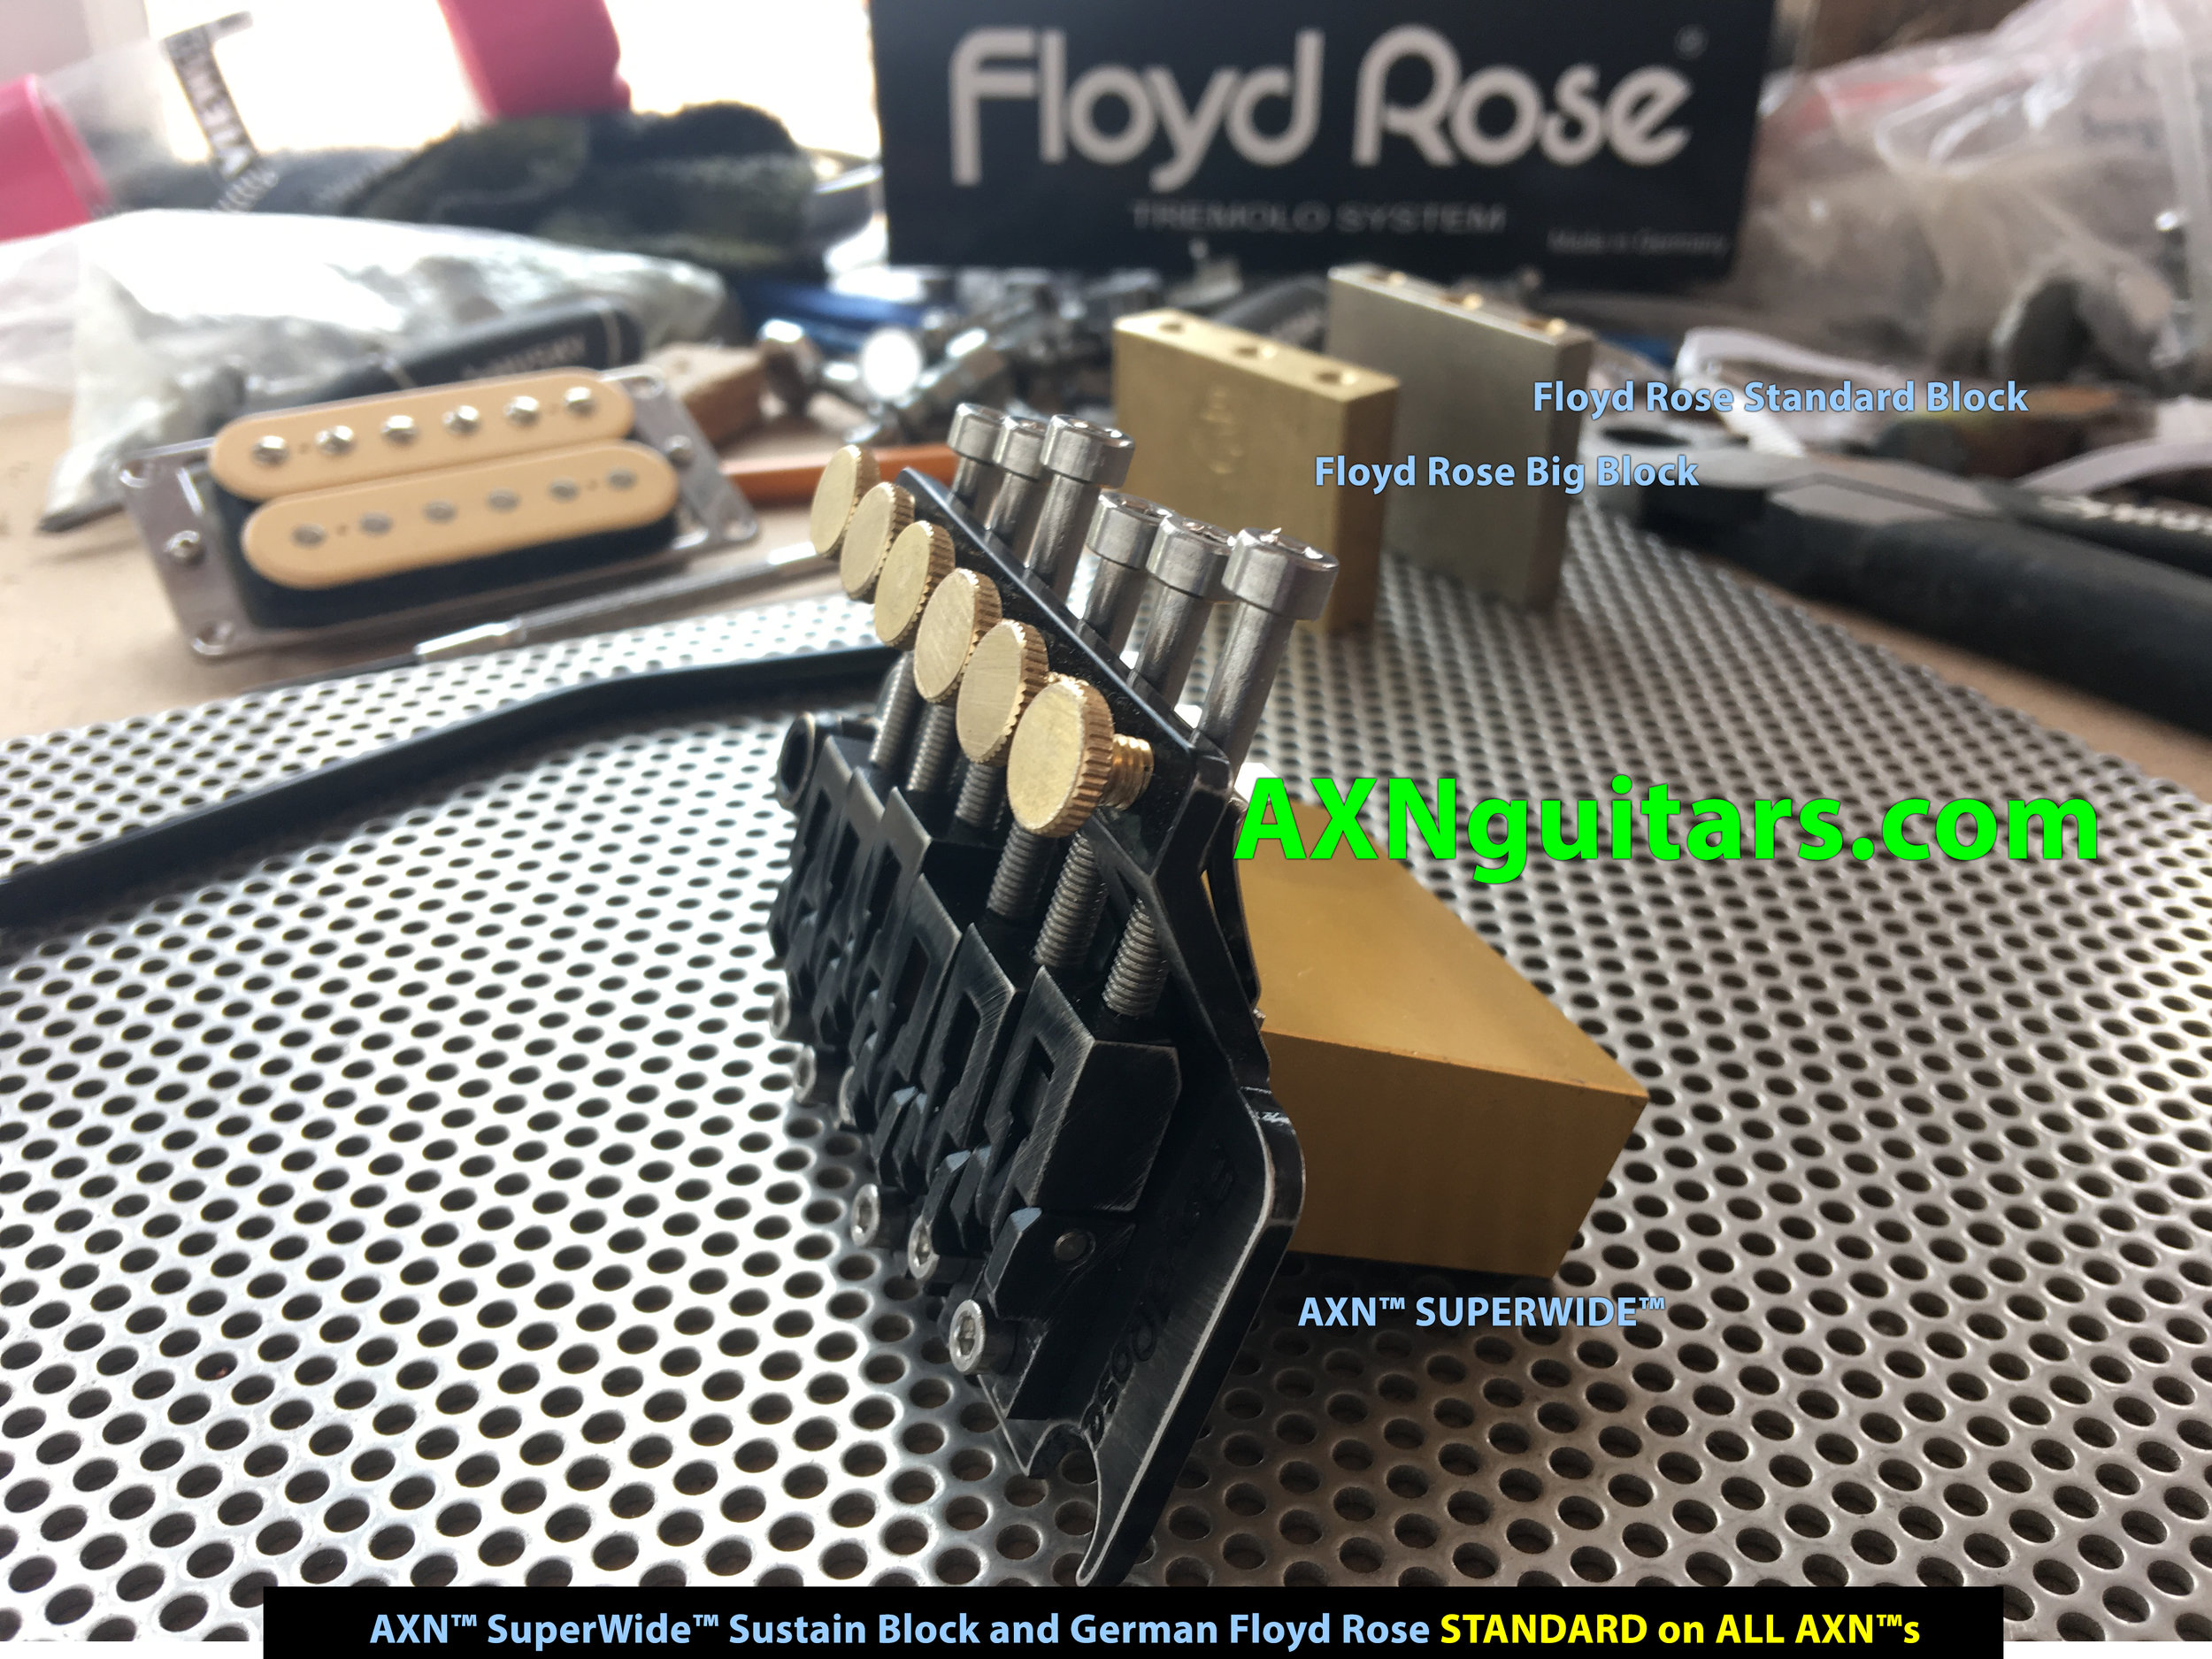 axn-superwide-assembly-004.jpg